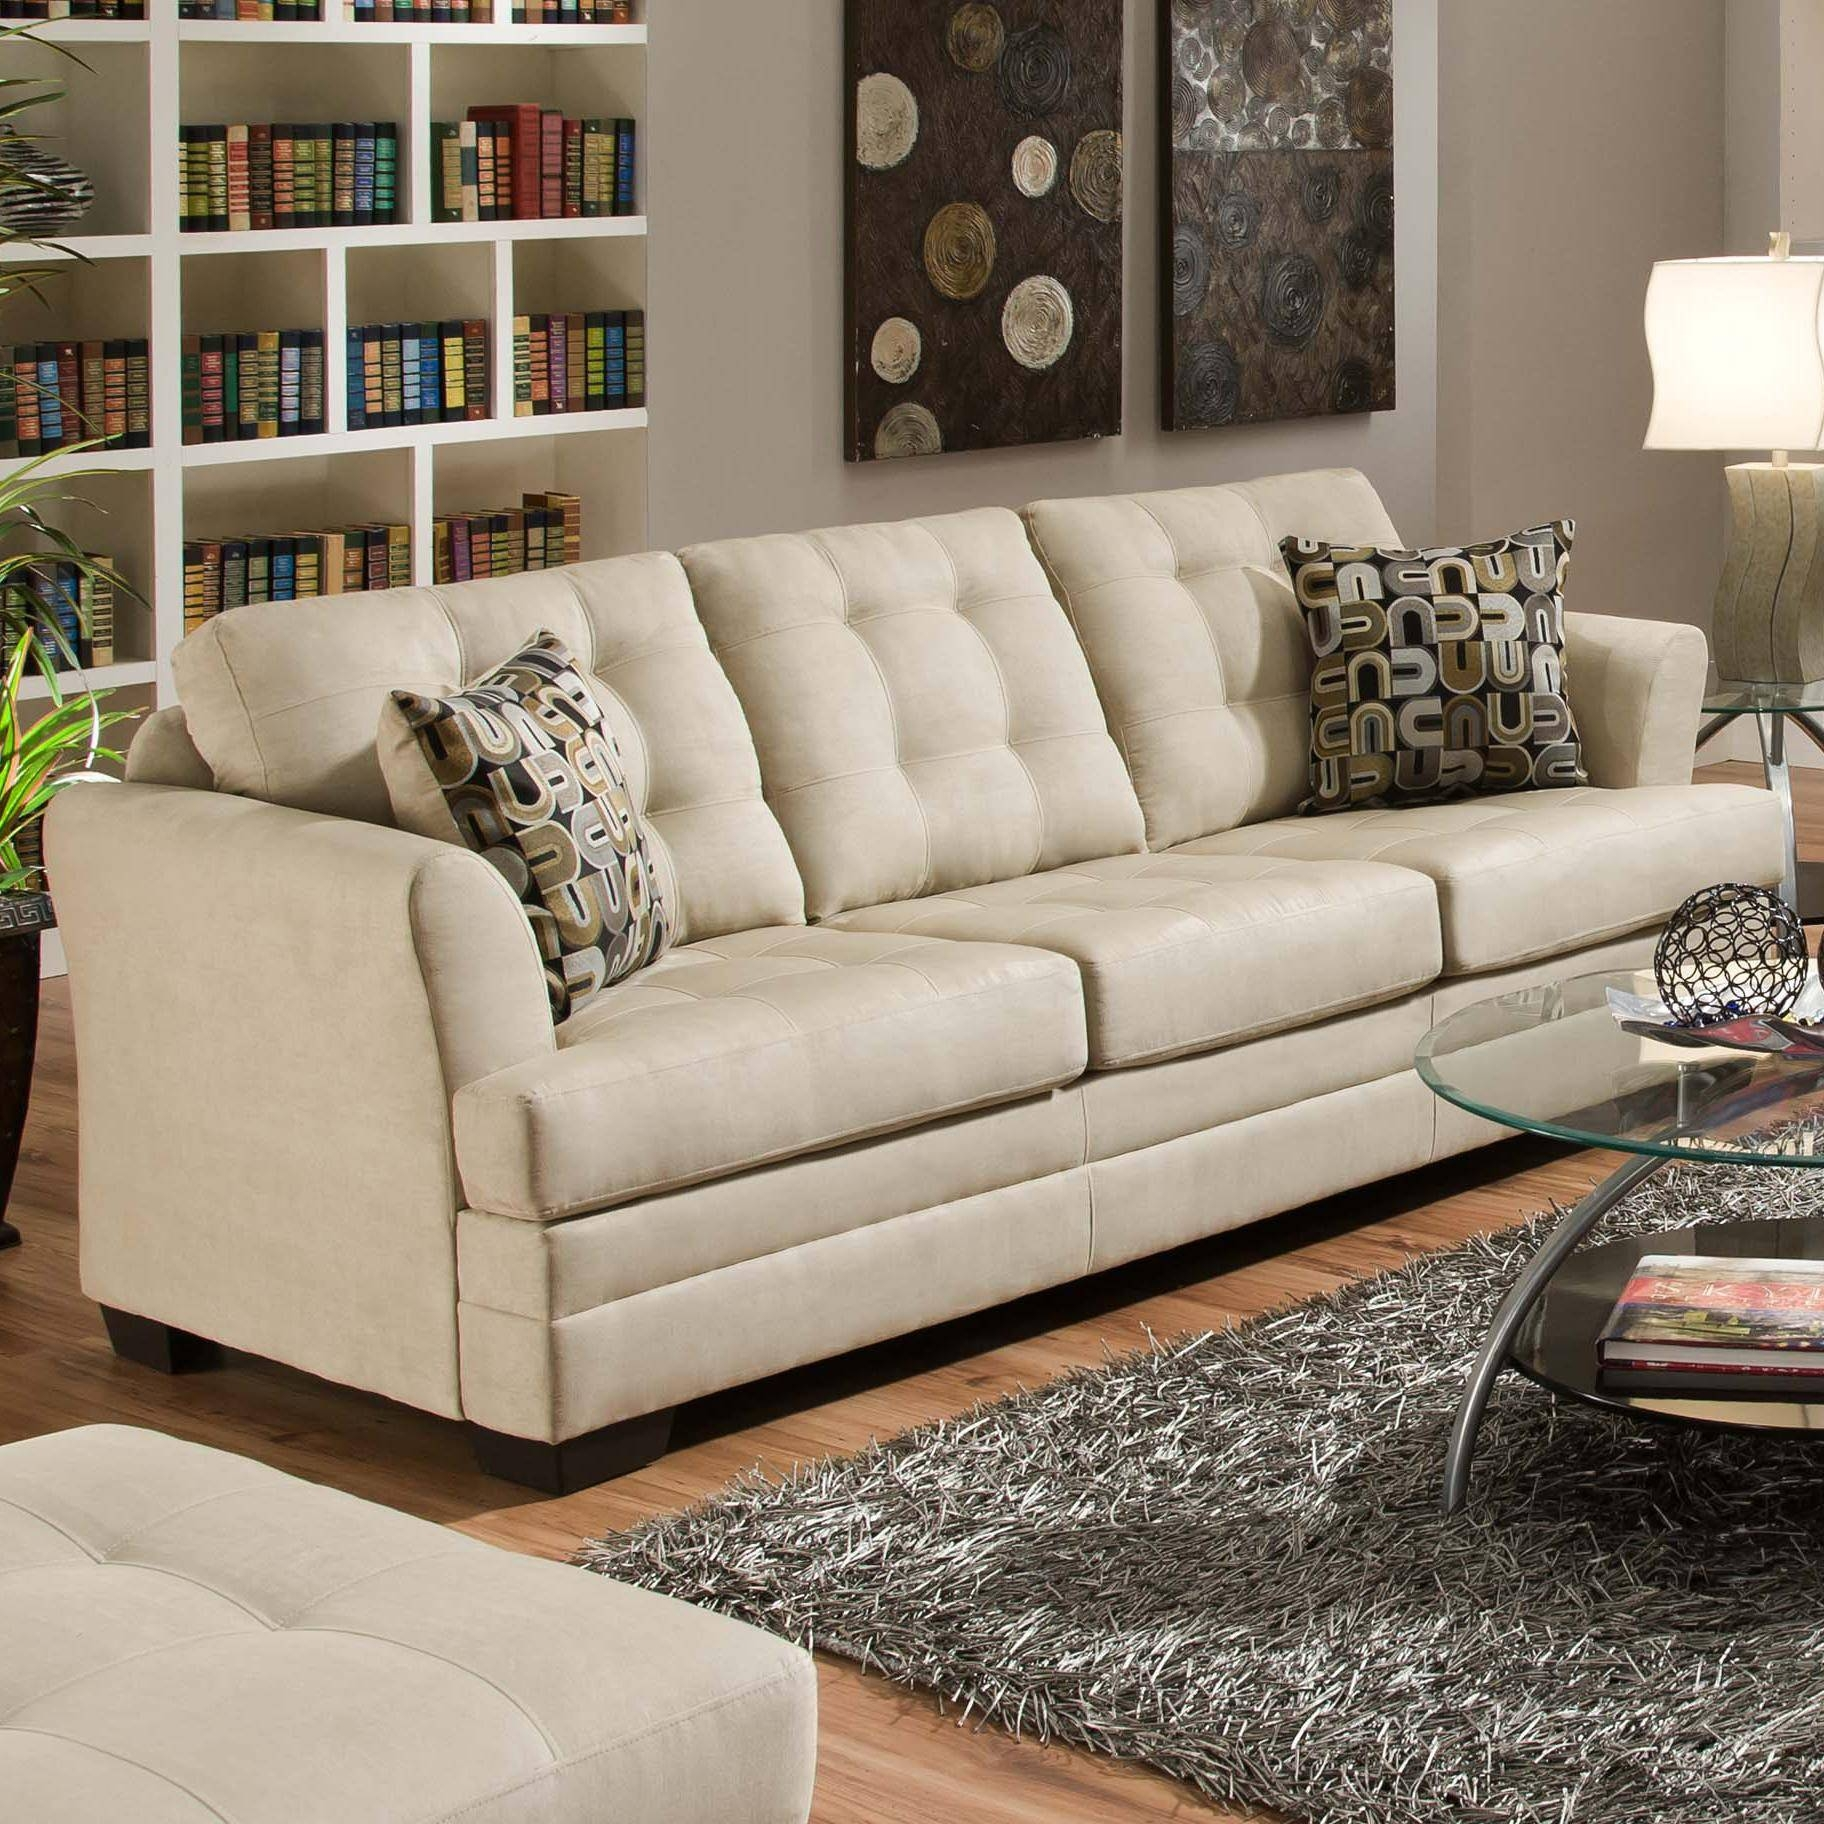 Simmons Upholstery 2057 Contemporarty Sofa With Tufted Cushions within Simmons Sofas (Image 9 of 15)